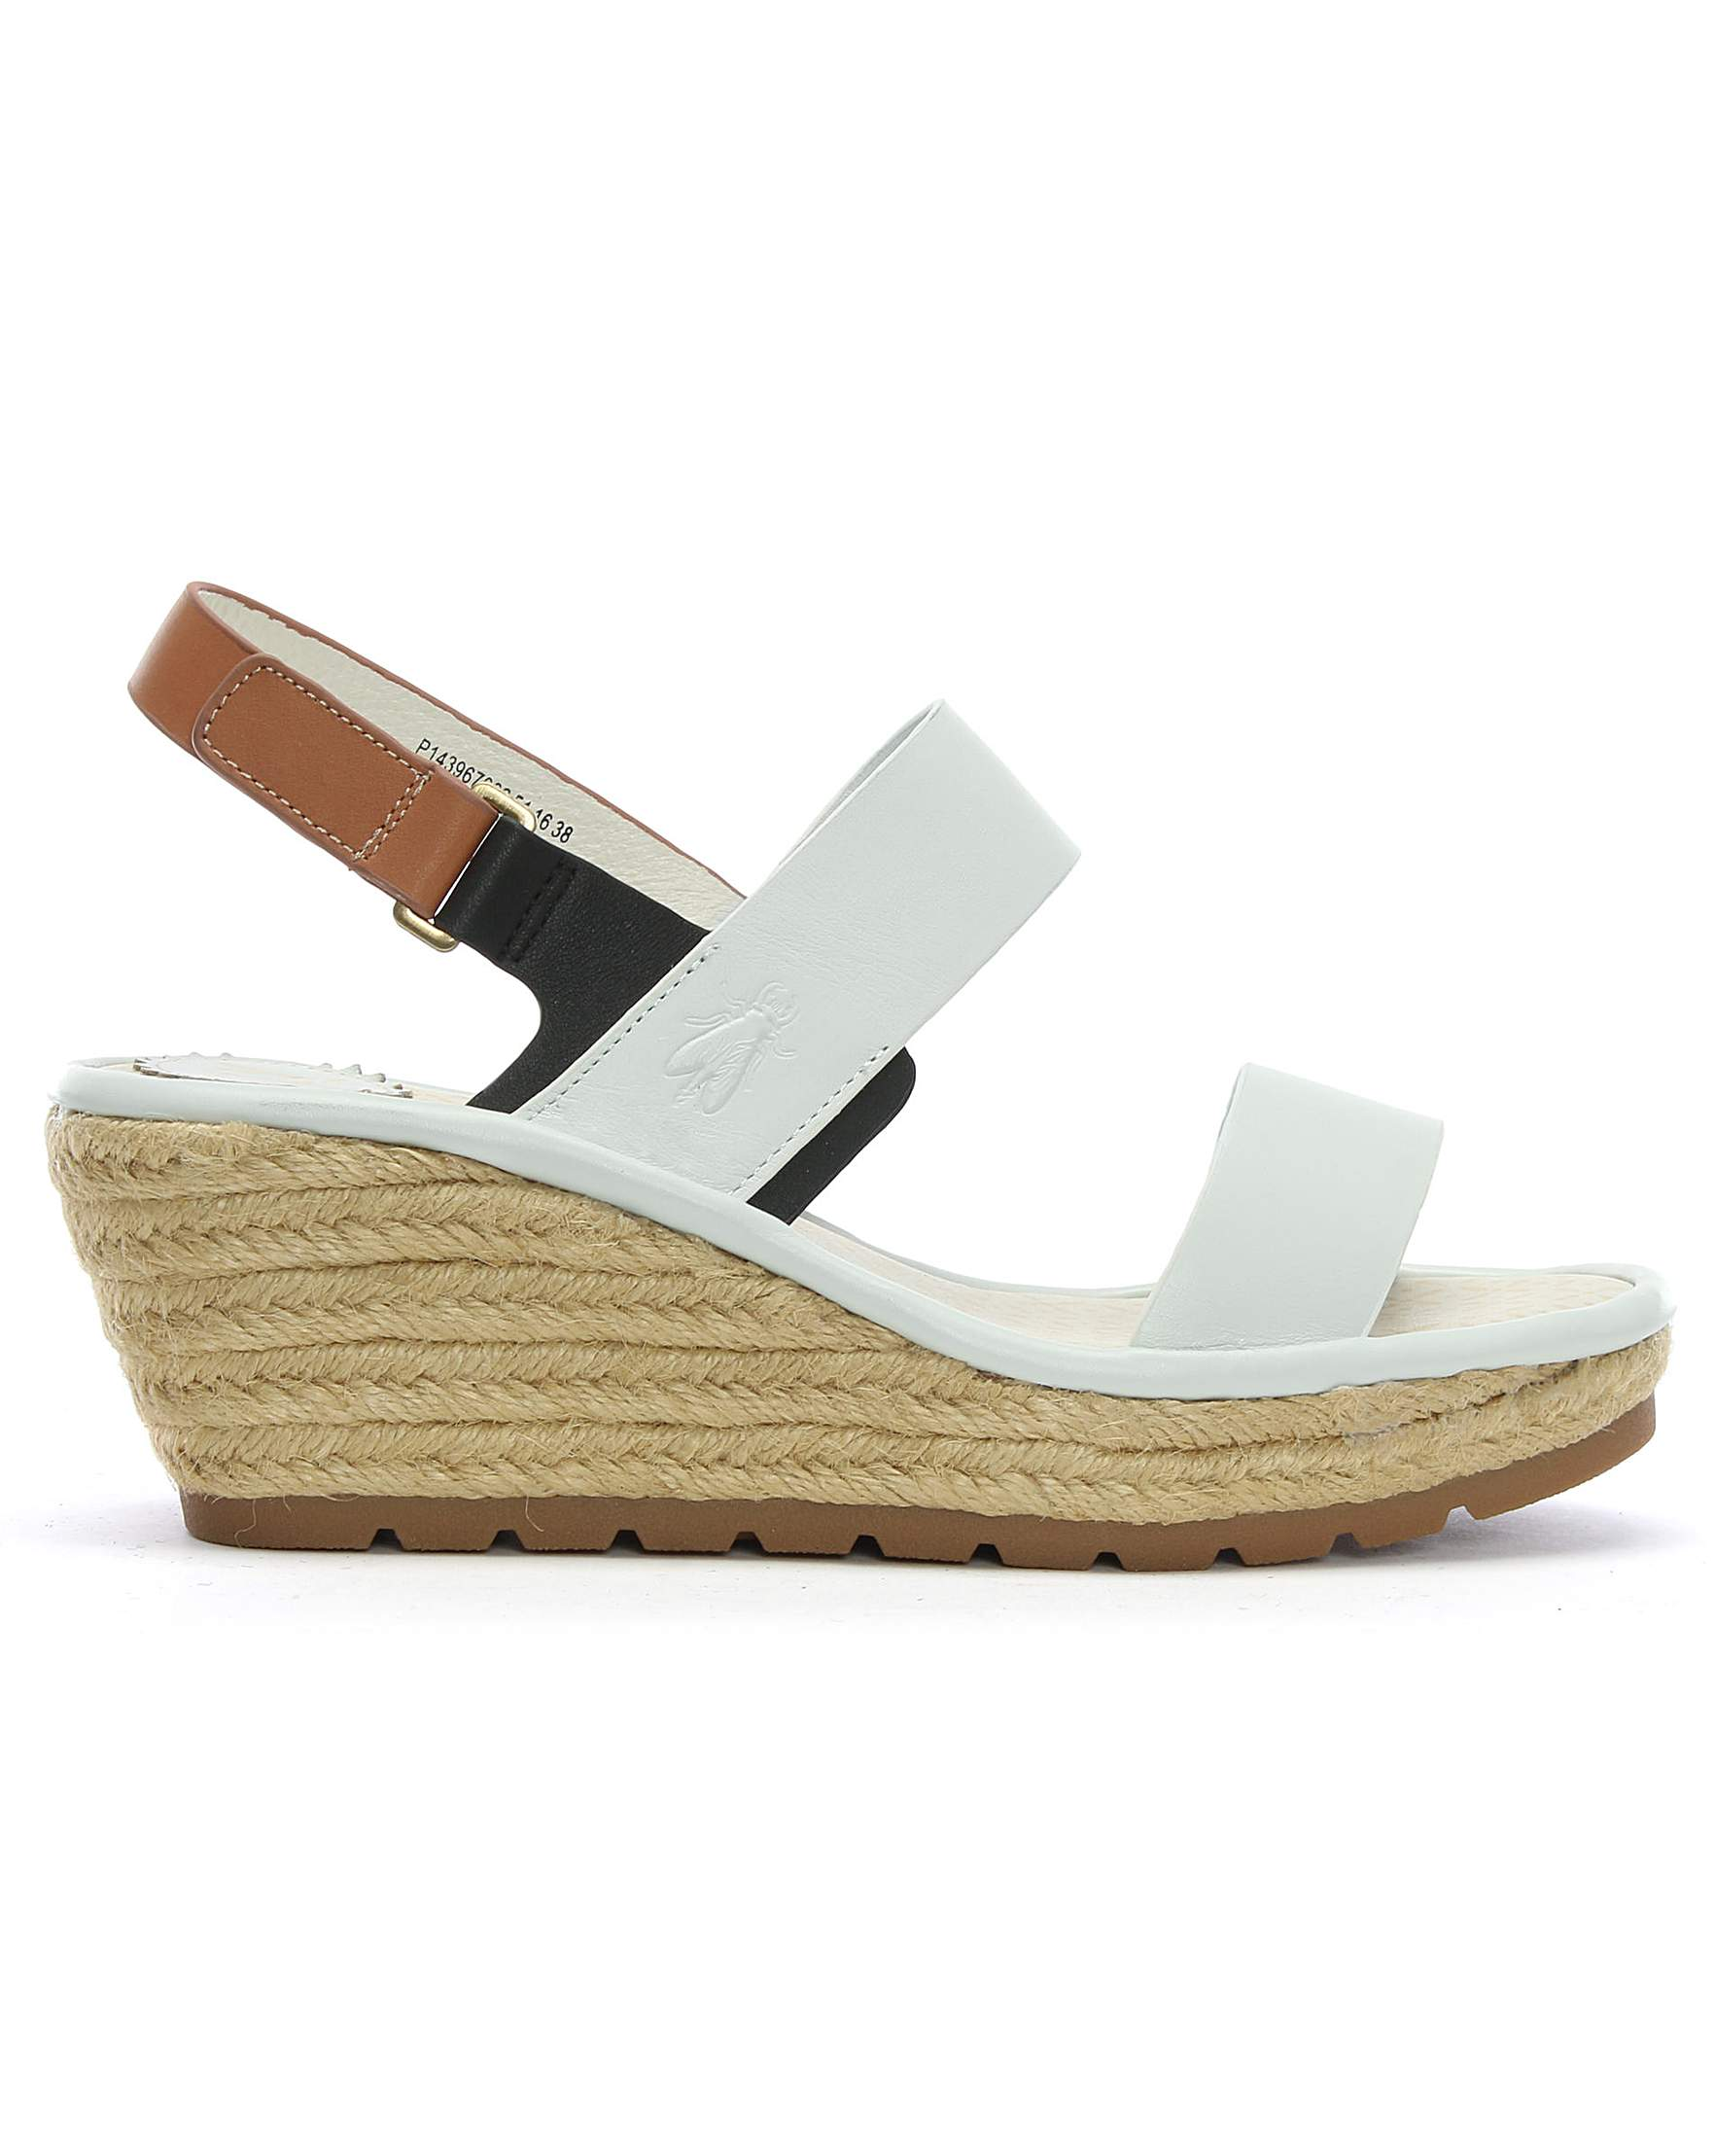 81f0614bcb8 Fly London Ekan Leather Two Strap Wedge Espadrille Sandals